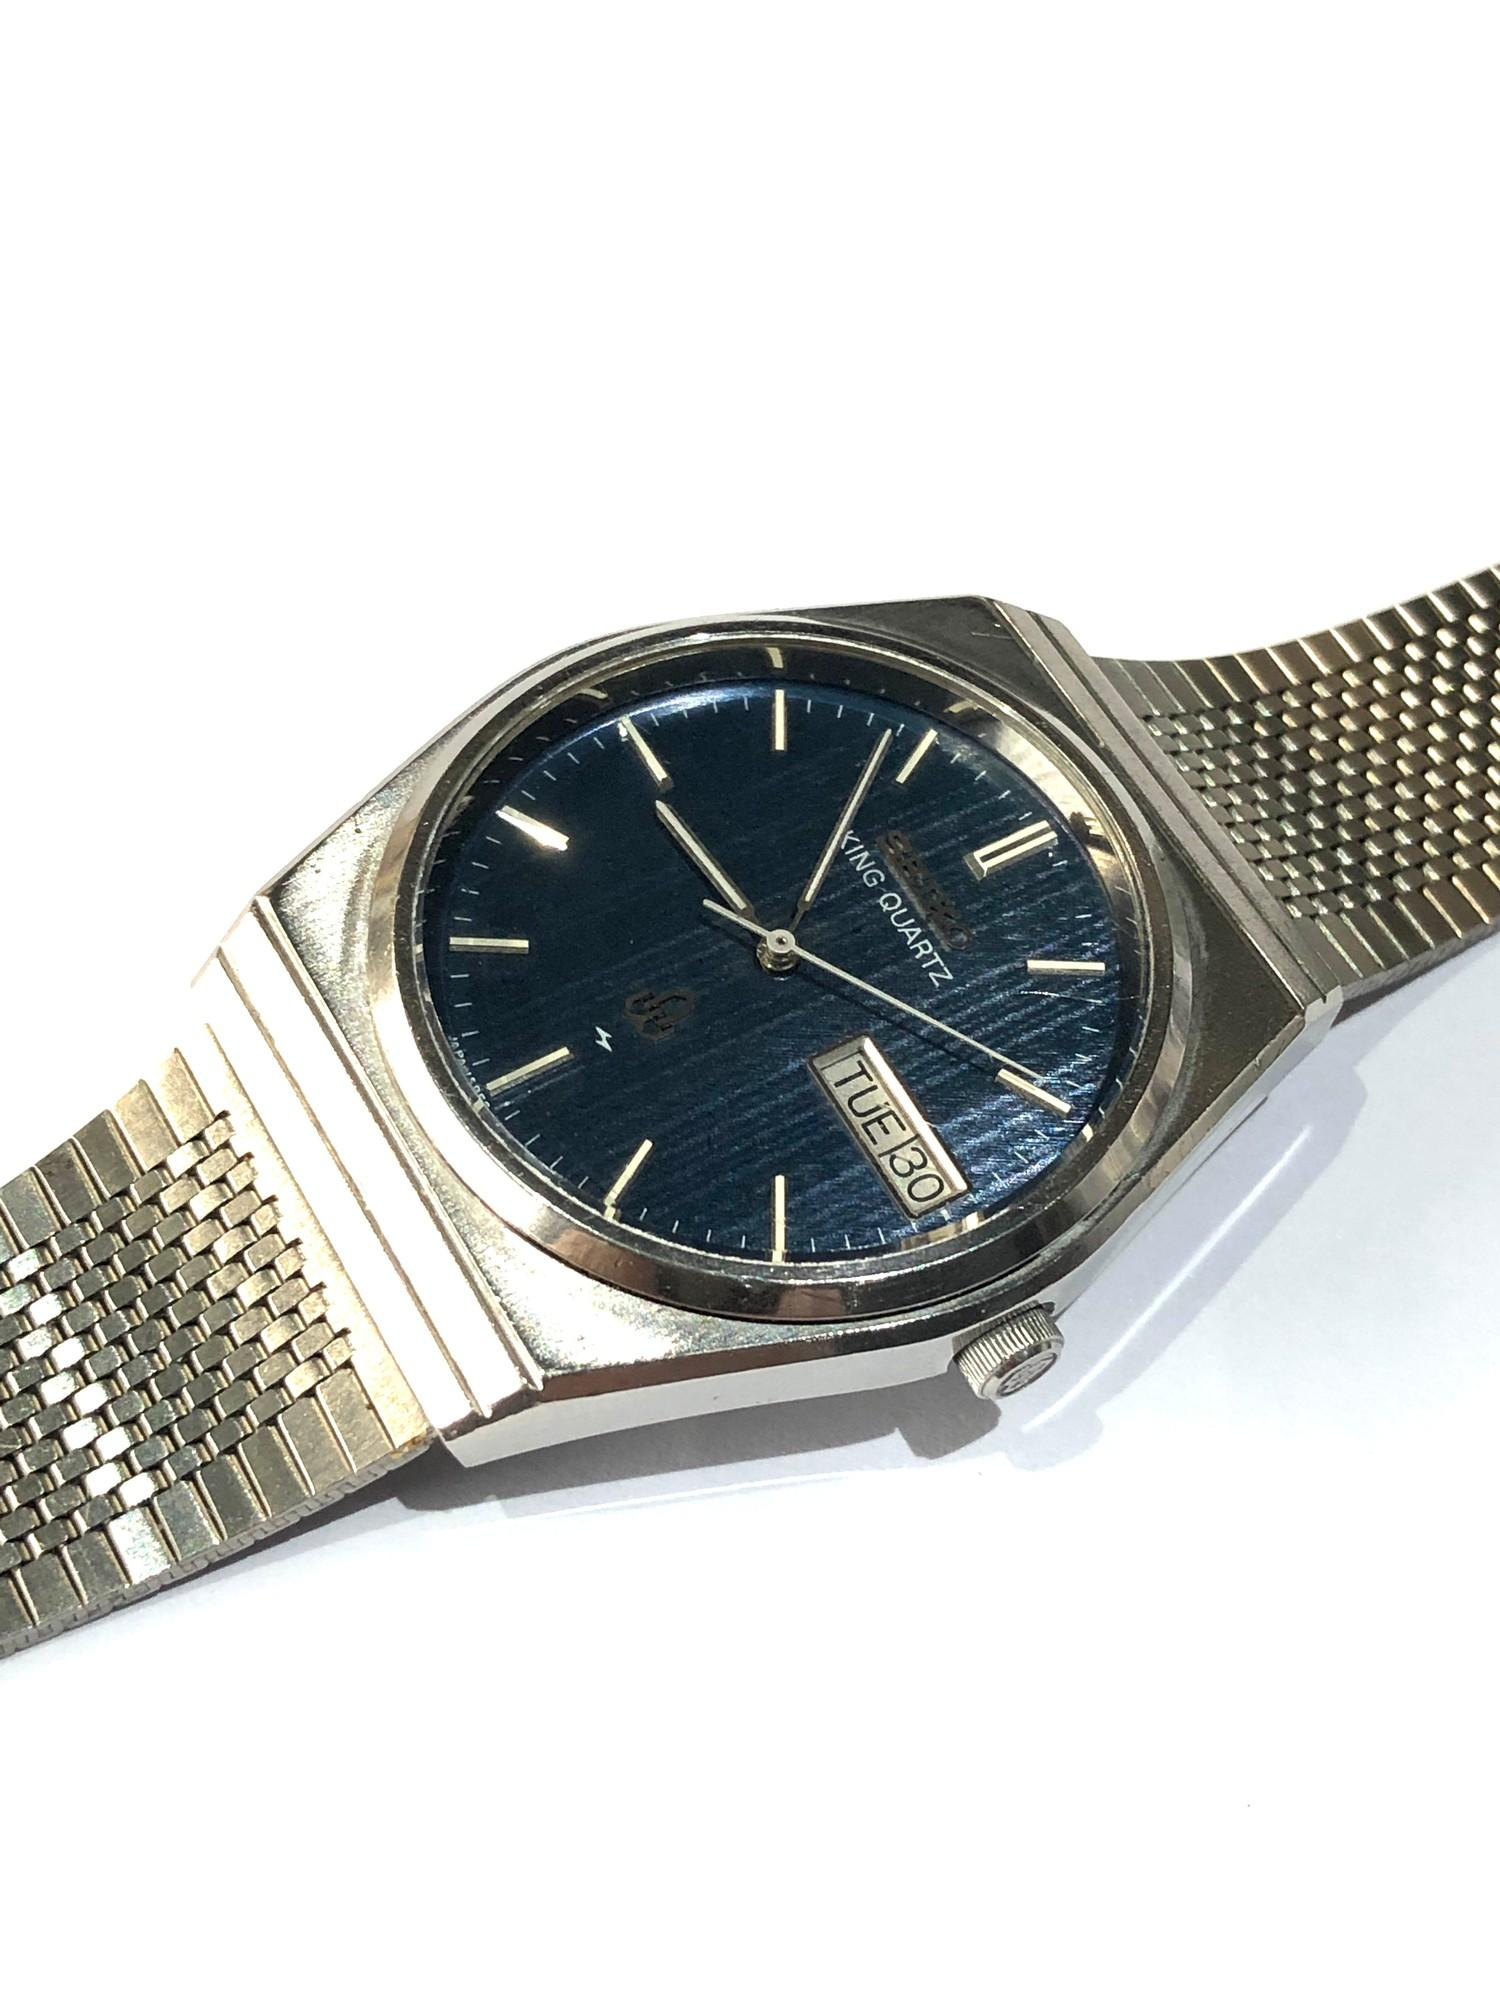 Vintage Seiko king quartz 5856-7040 watch is in working order but no warranty given - Image 2 of 5